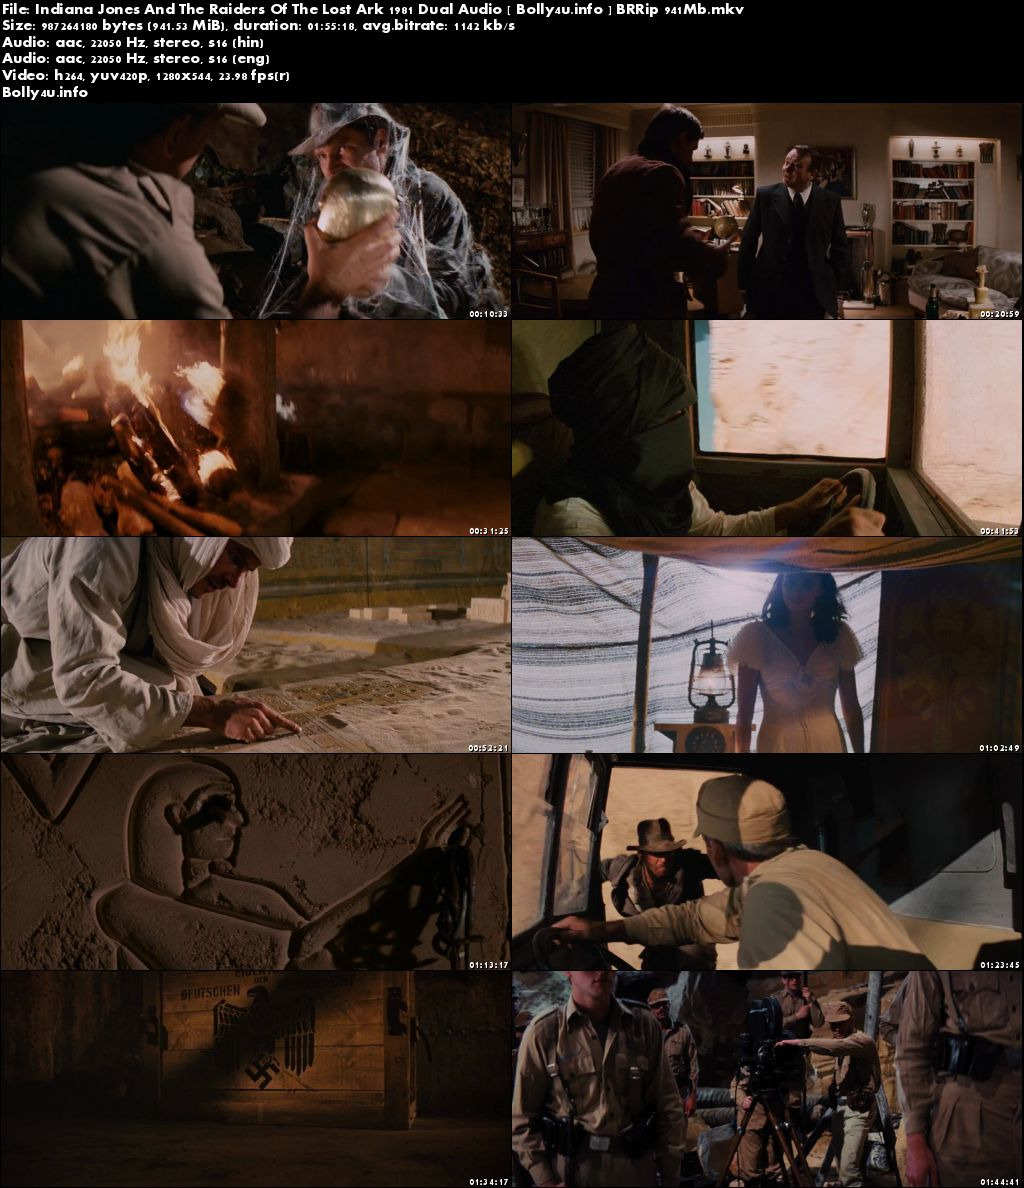 Indiana Jones And The Raiders Of The Lost Ark 1981 BRRip Dual Audio 900MB Hindi 720p Download